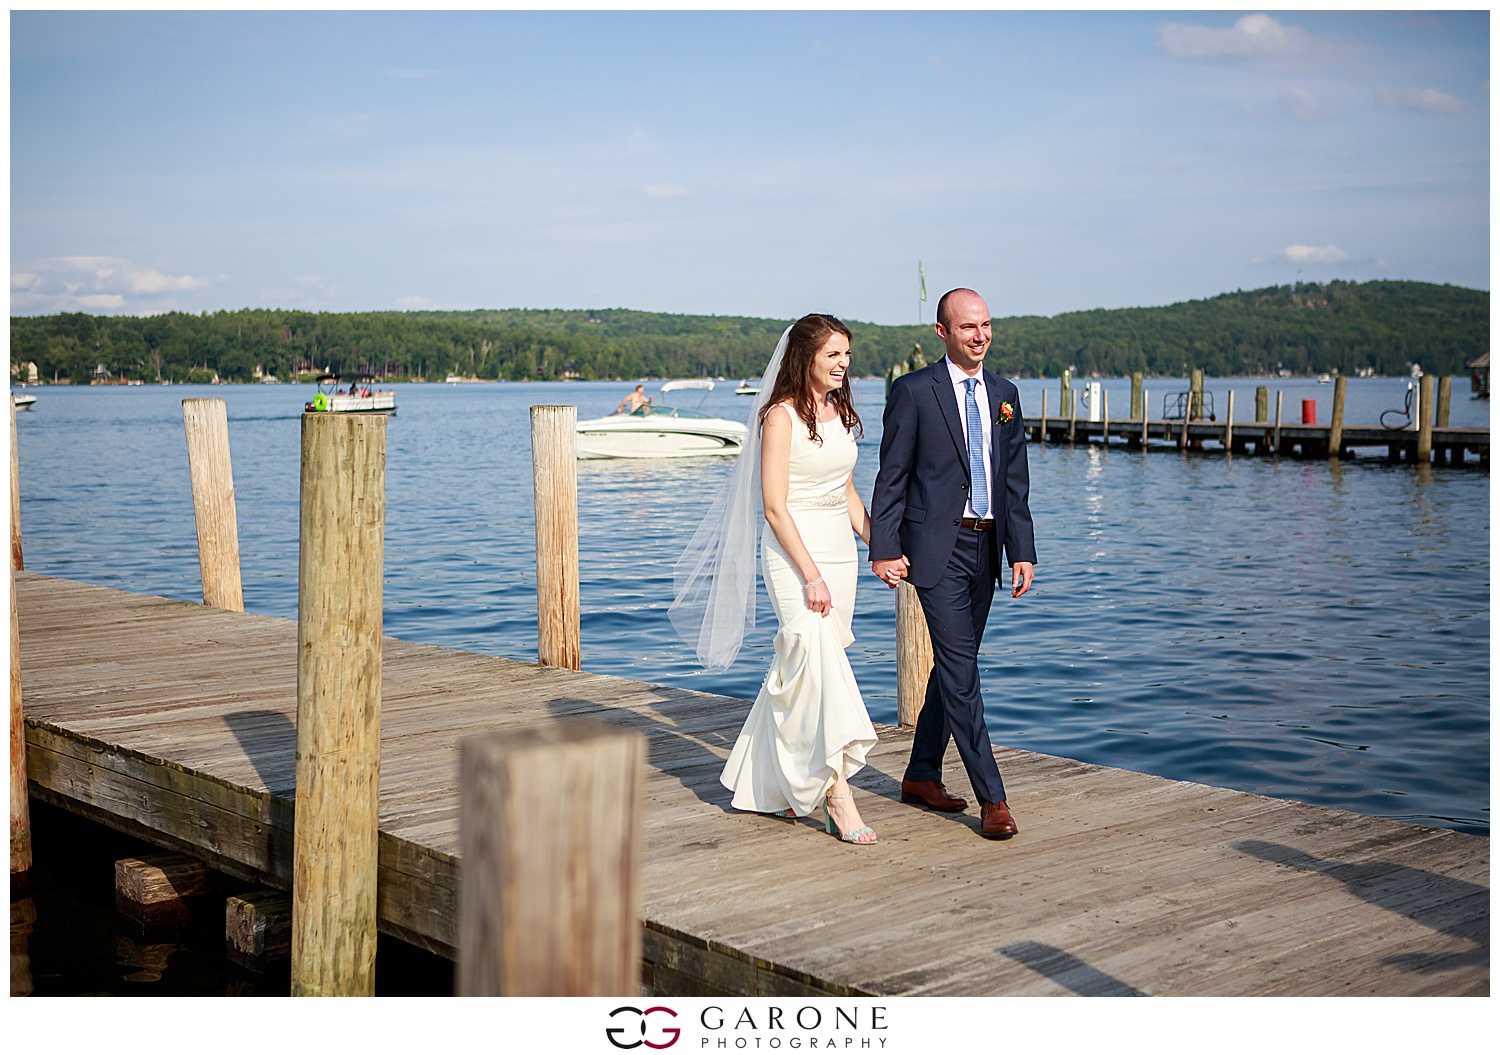 Church_Landing_Garone_Photography_Wedding_Sarah_Patrick_0001.jpg